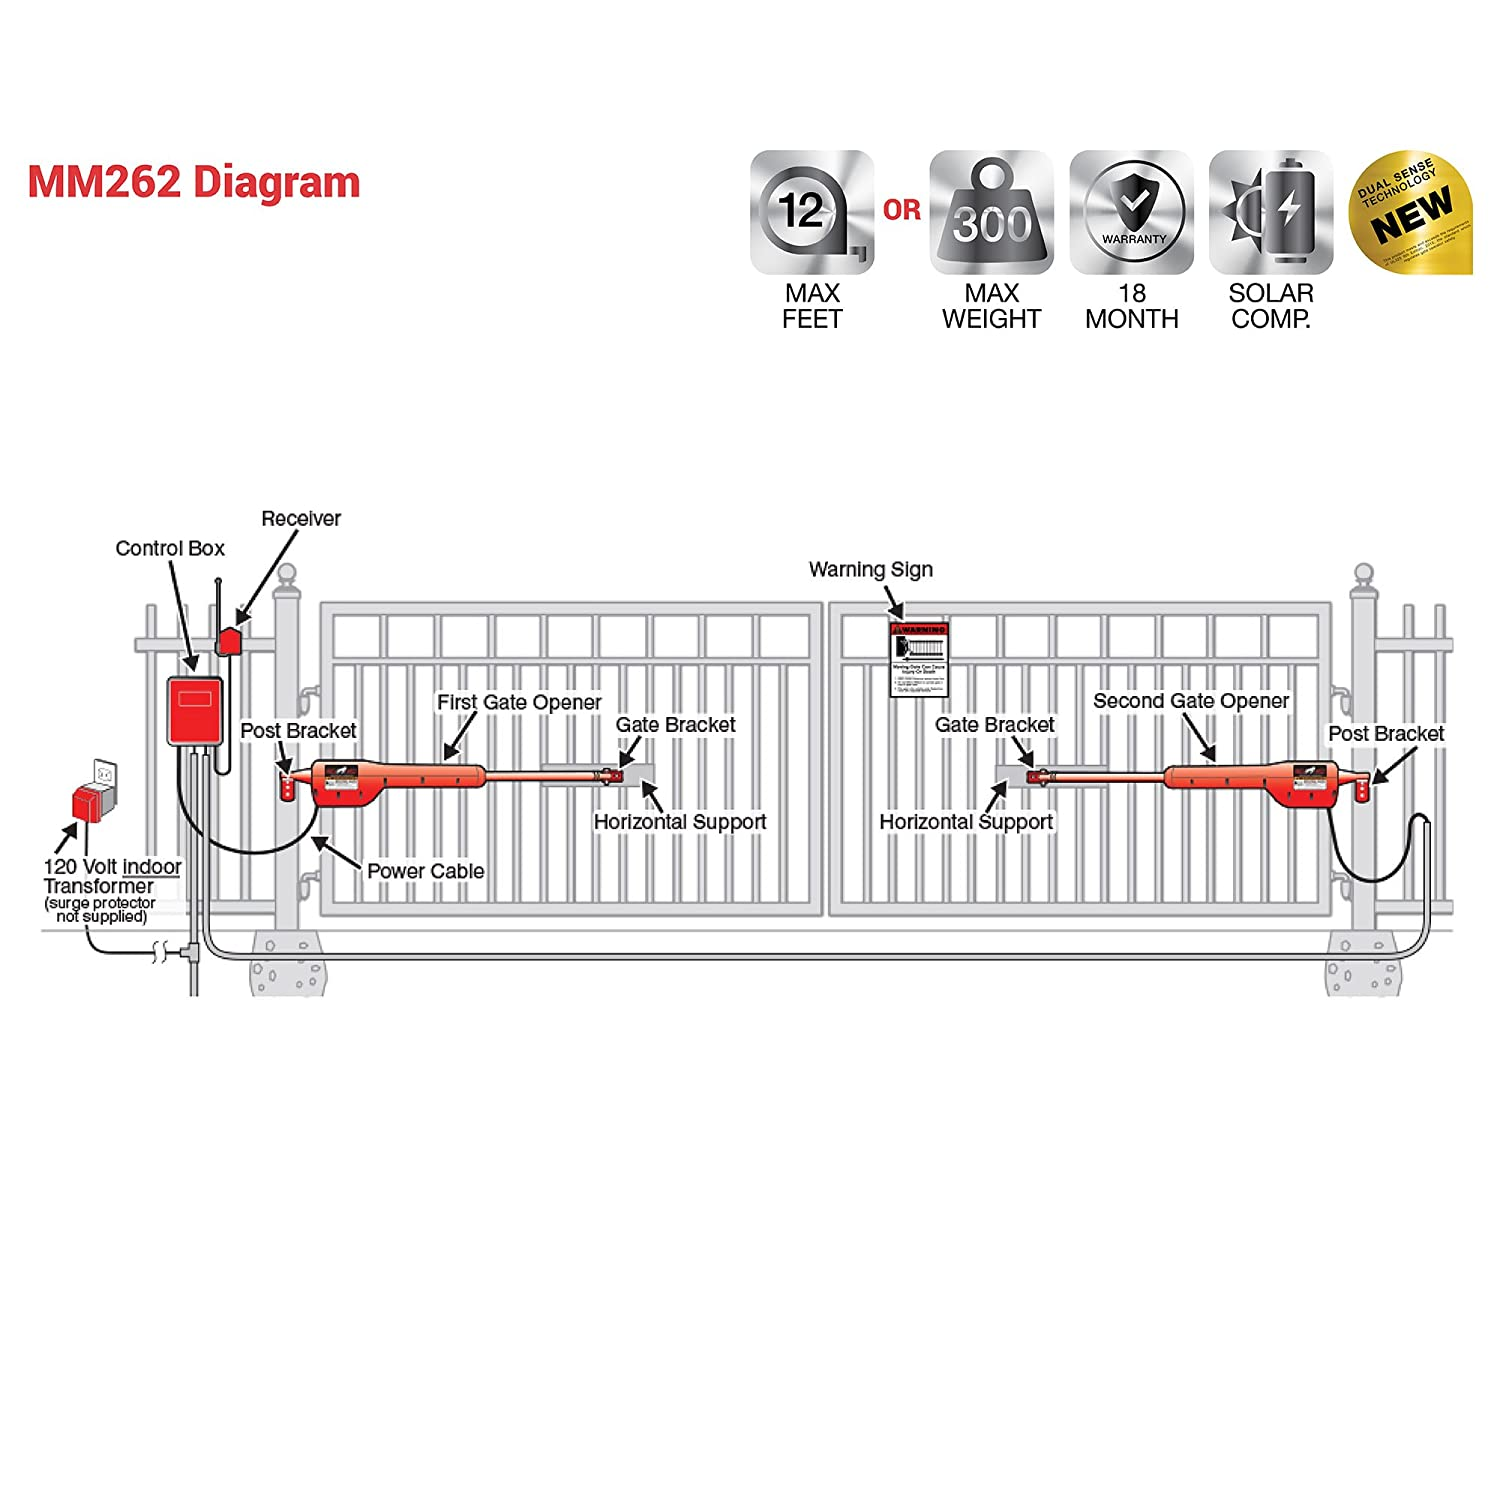 Mighty Mule Gate Opener Two Battery Wiring Diagram on mighty mule 350 wiring diagram, mighty mule 502 wiring diagram, gto wiring diagram, mighty mule gate latch wiring diagram, mighty mule gate opener accessories, mighty mule gate opener control panel,